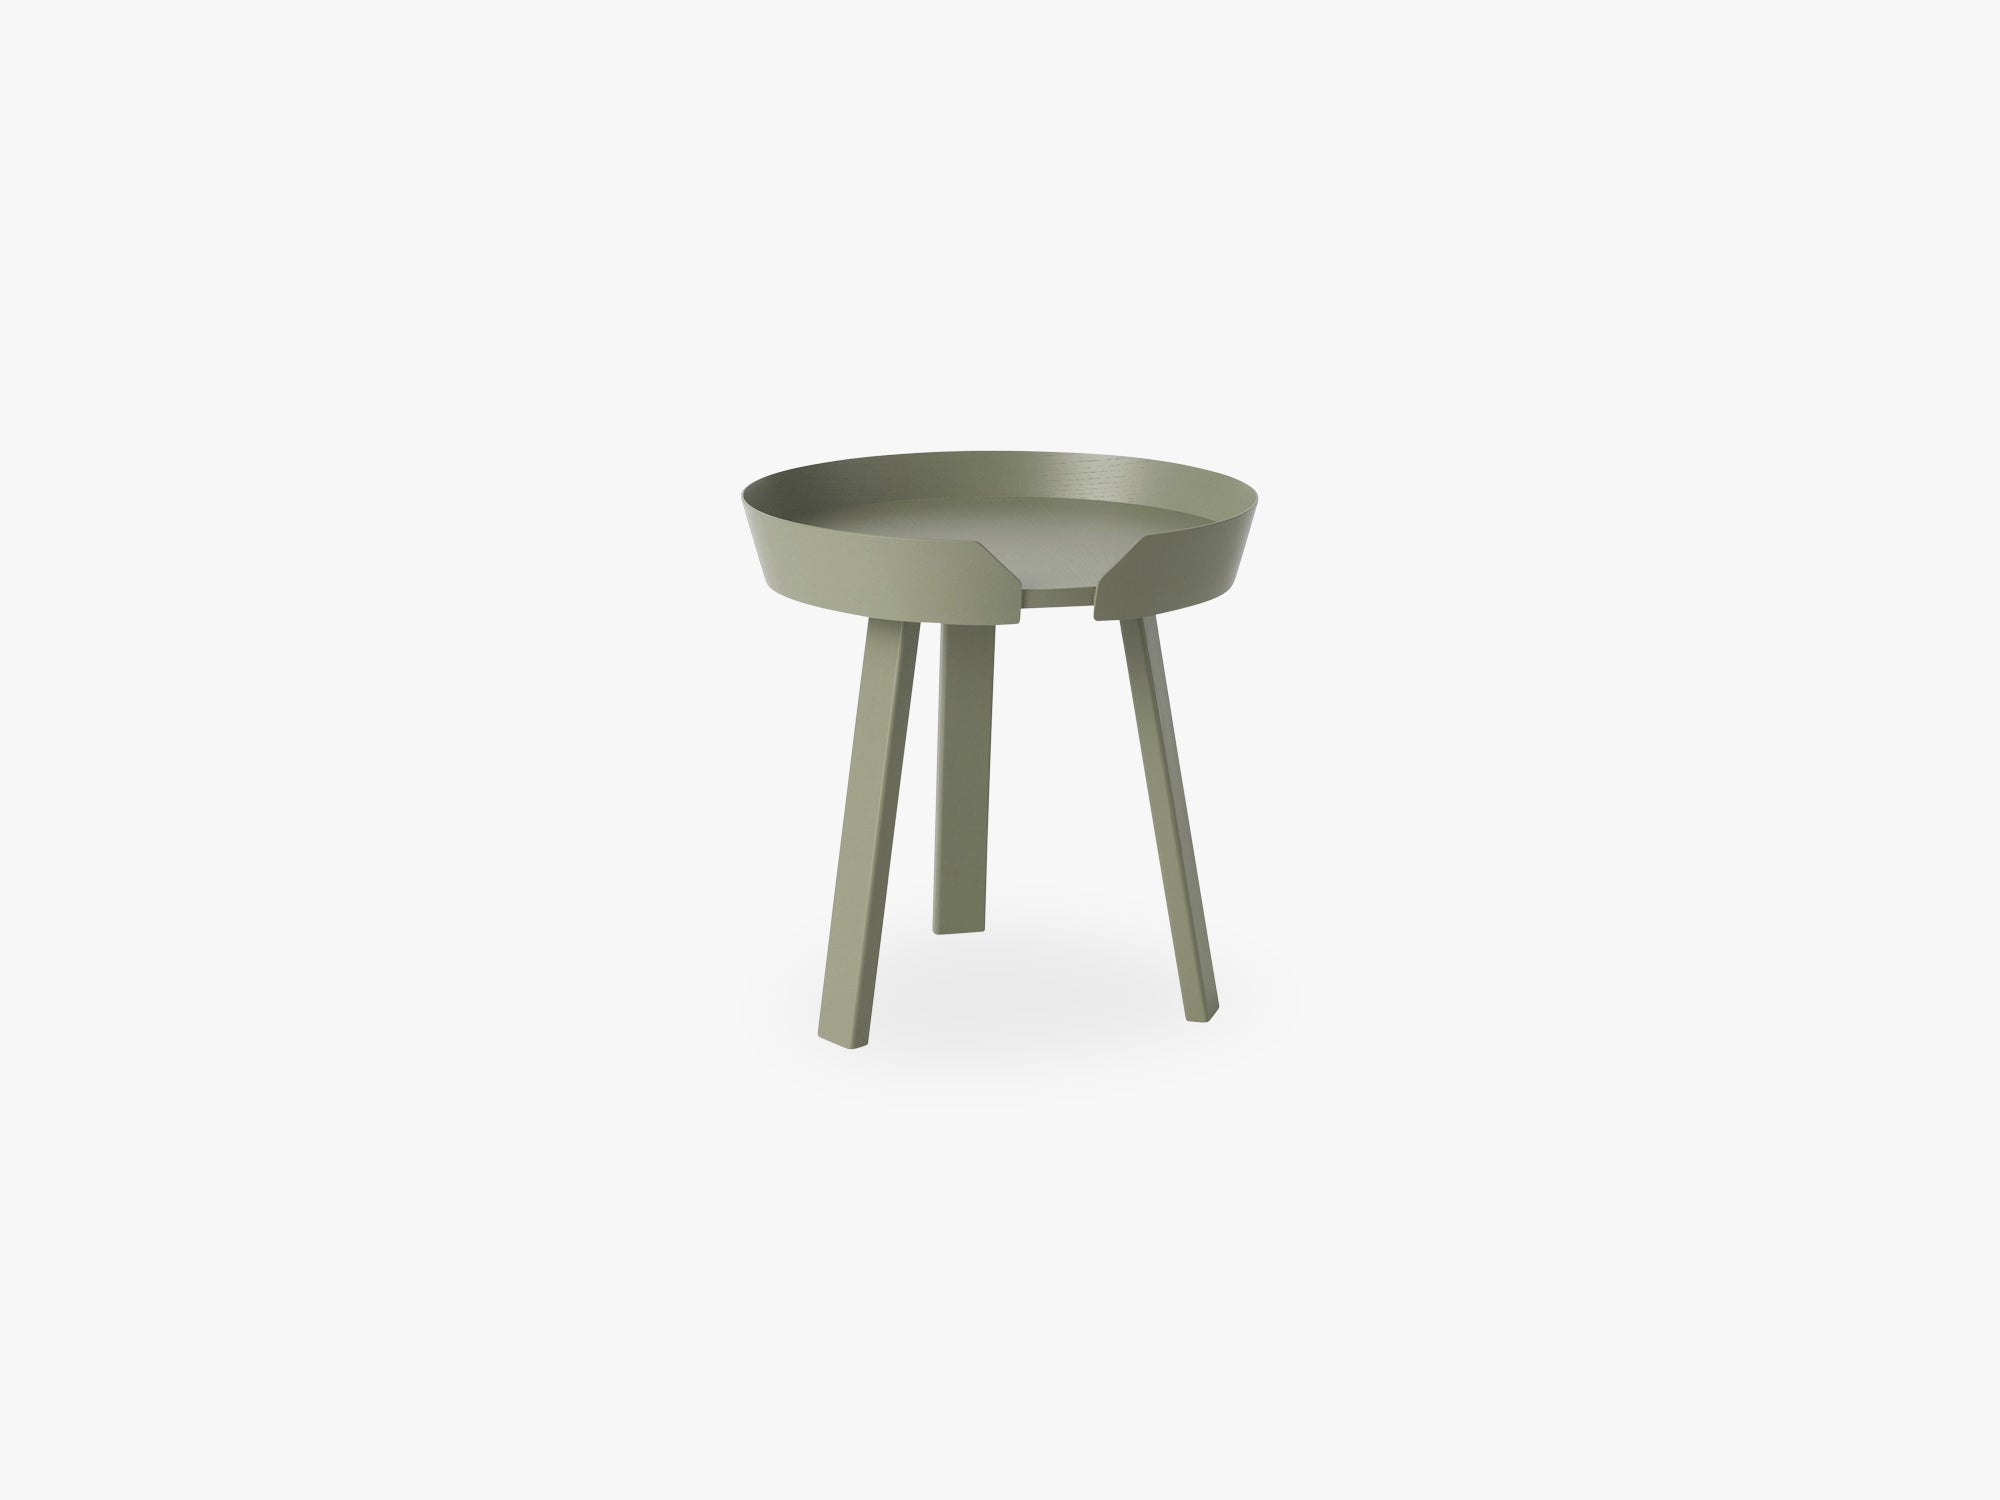 Around Coffee Table - Small, Dusty Green fra Muuto